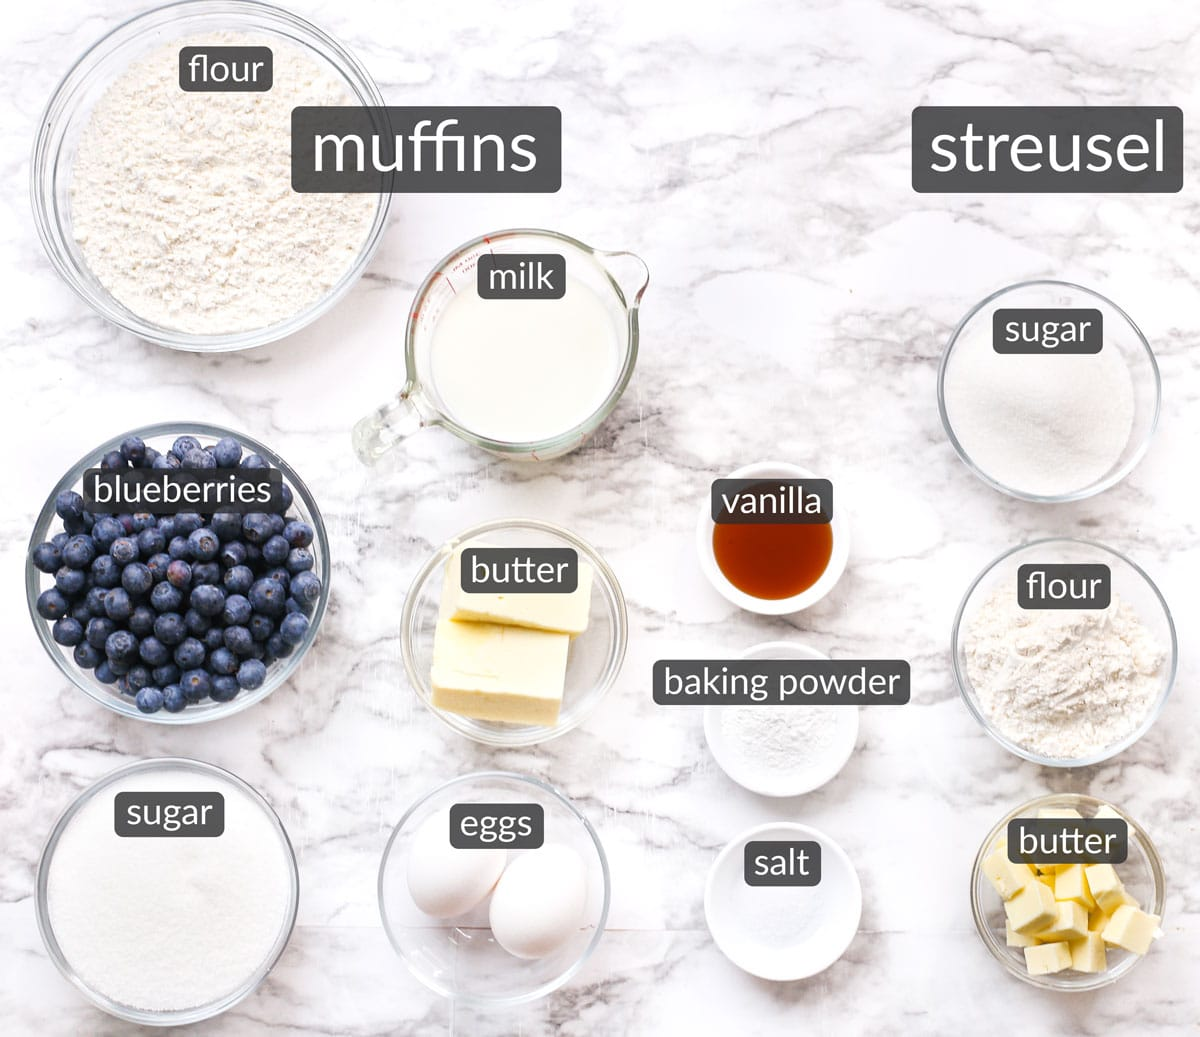 ingredients in bakery style blueberry streusel muffins